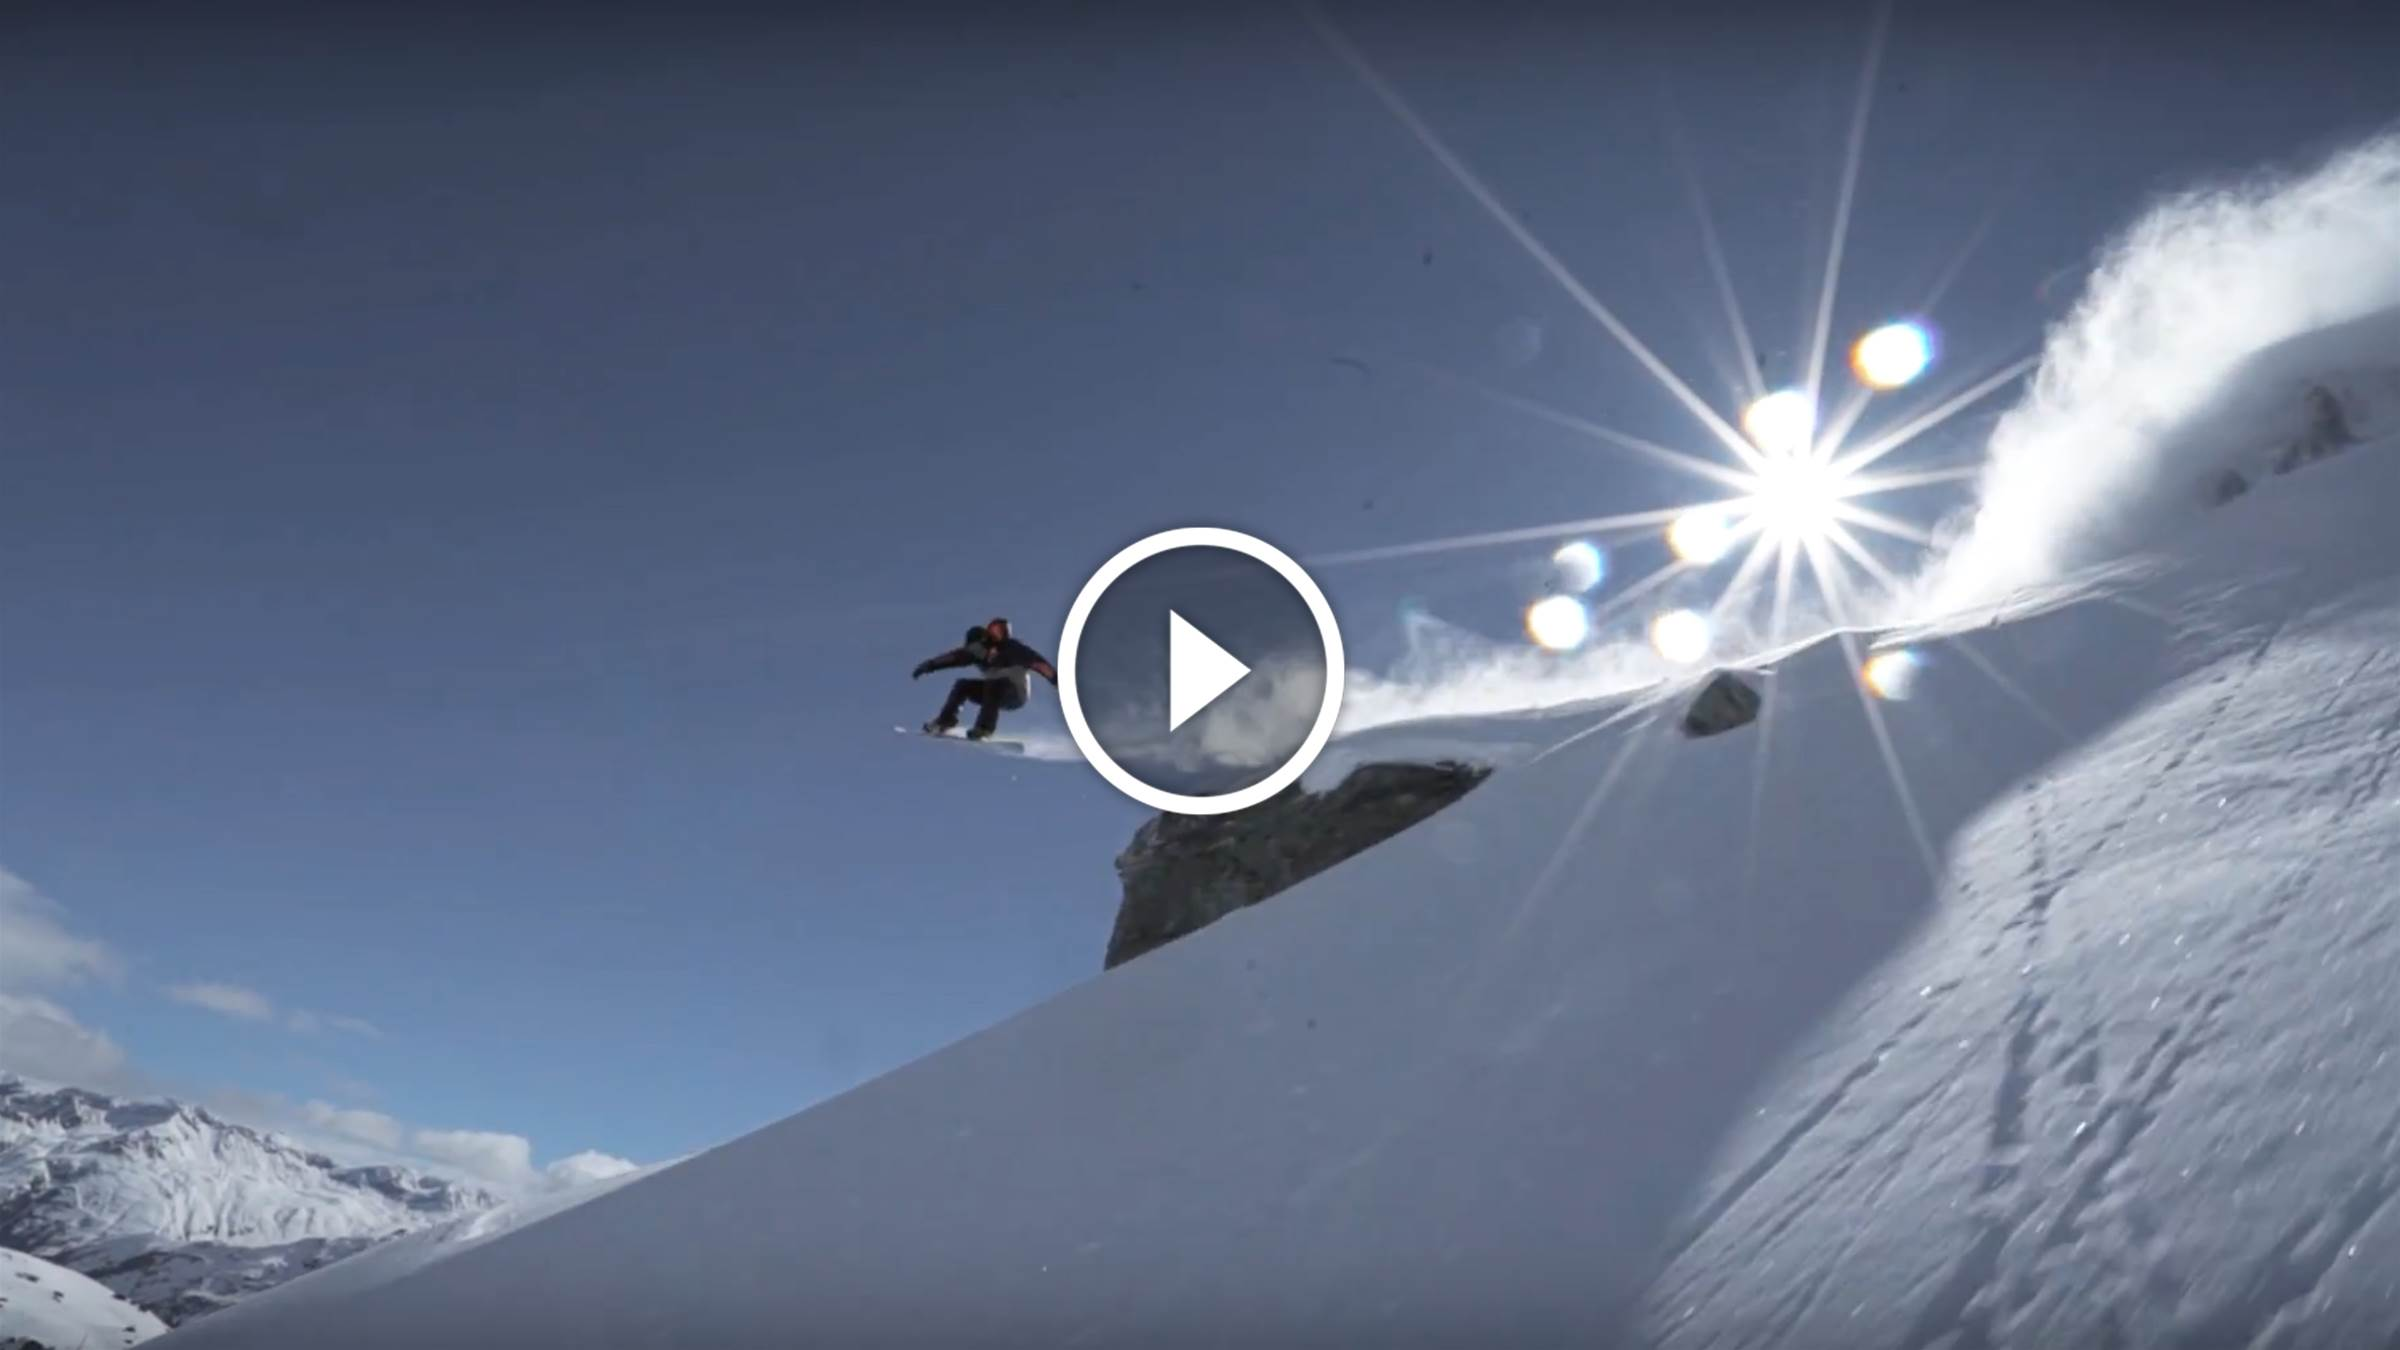 SNOWBOARDING AT CORVATSCH | Stale and Torgeir